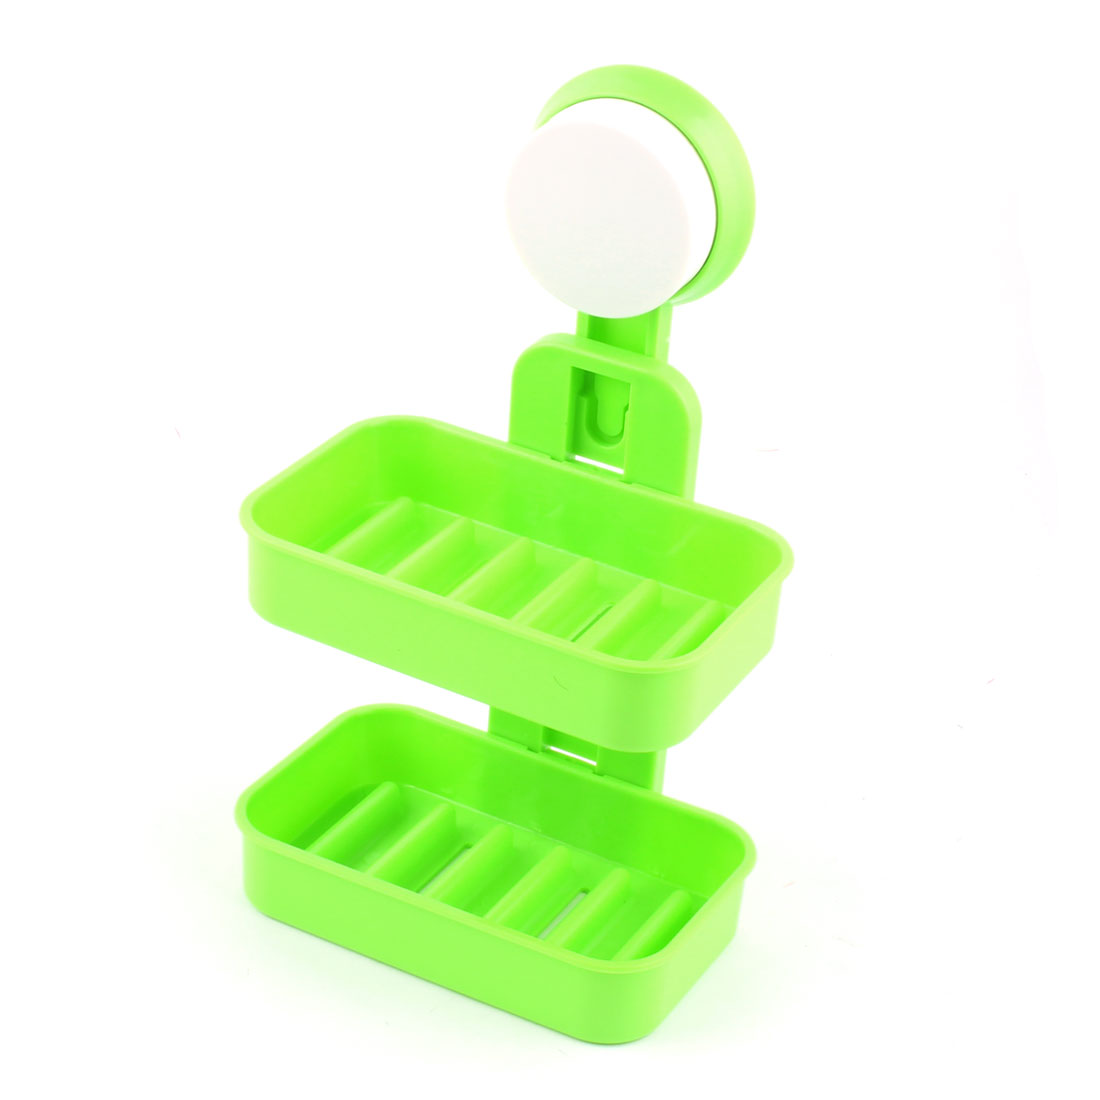 Household Bathroom Plastic 2 Layers Wall Suction Disc Soap Holder Container Box Green